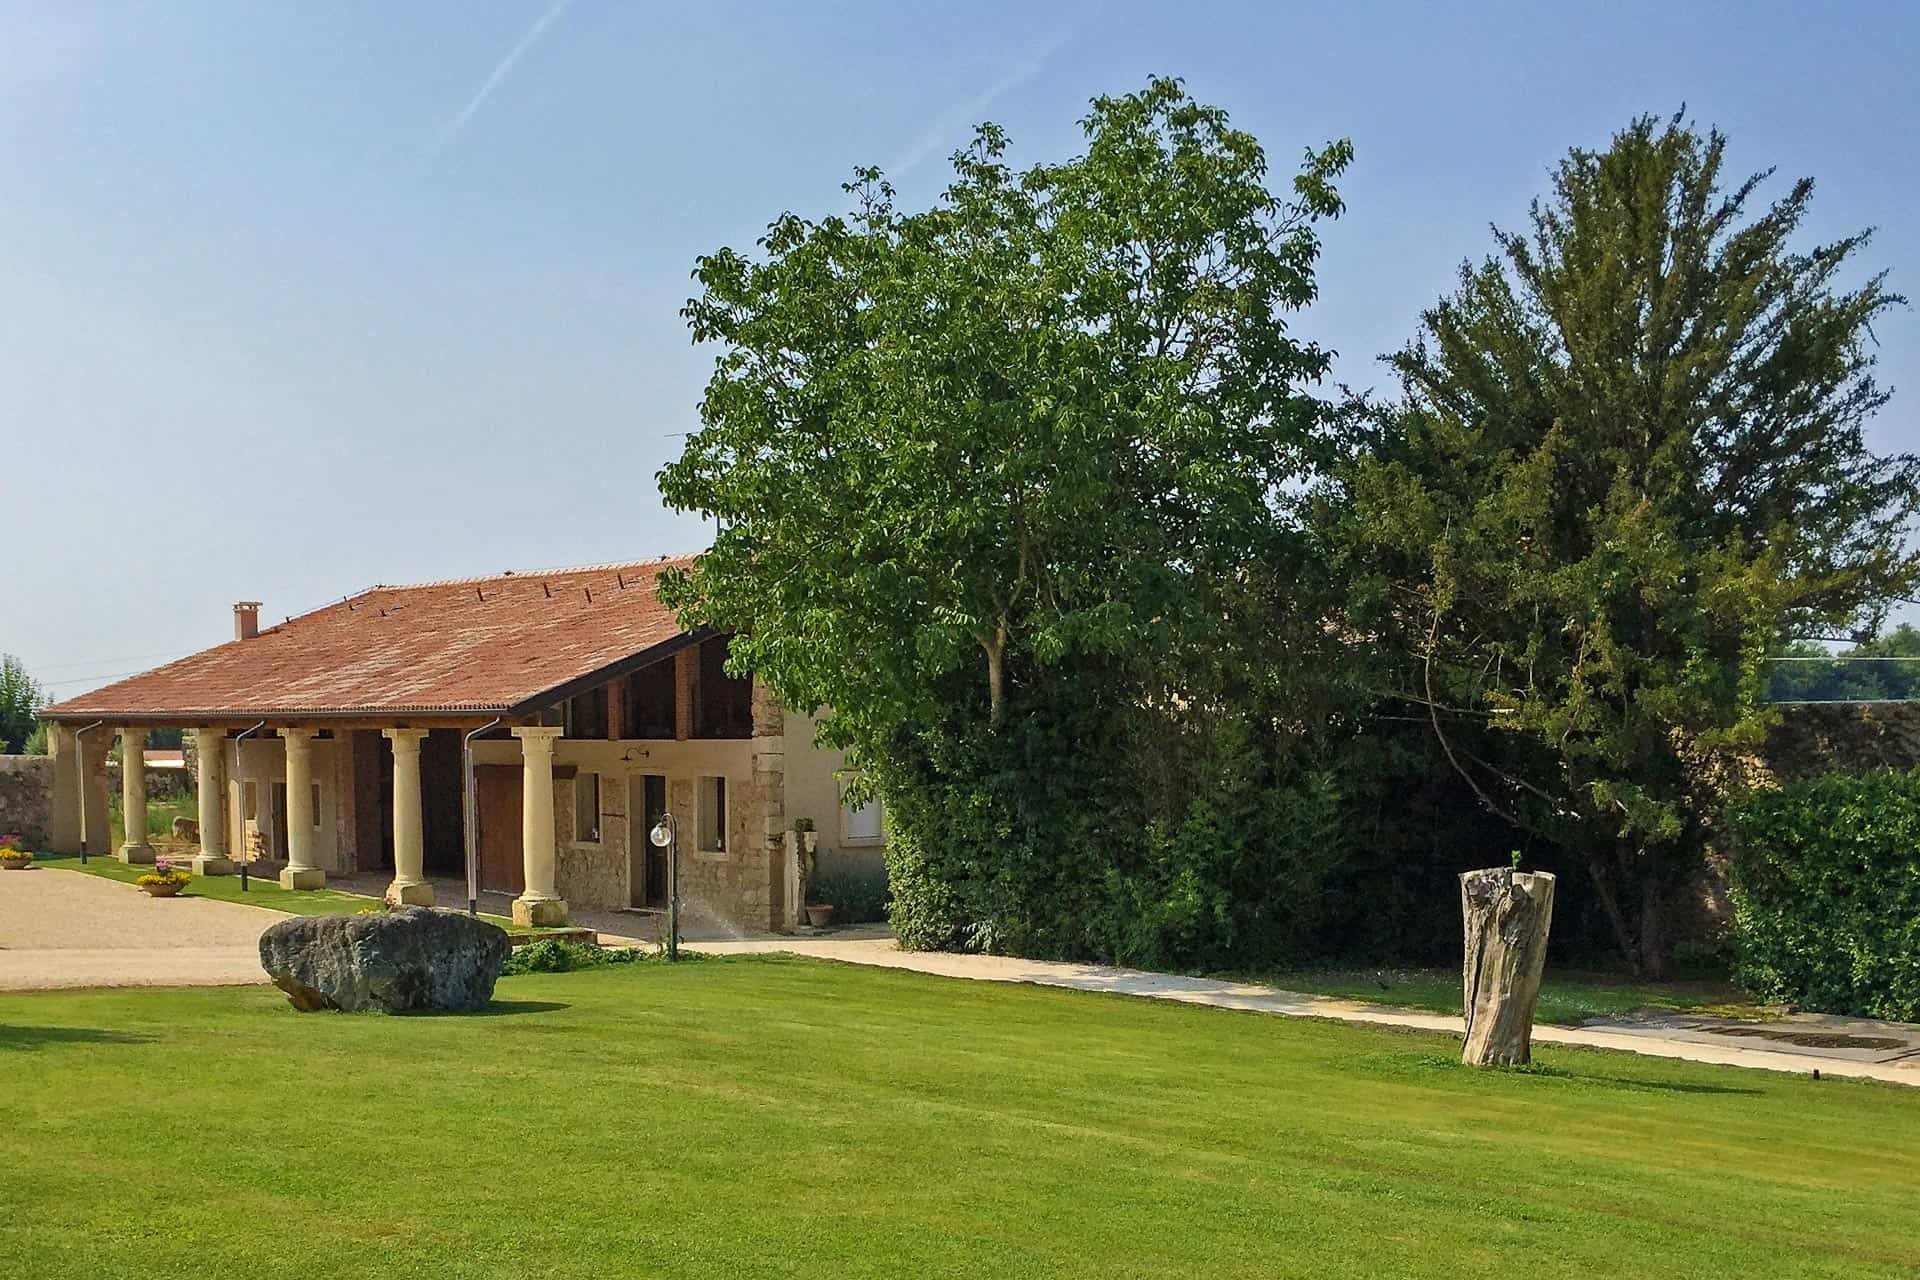 La Pria winery - the barchessa - hospitality in the winery